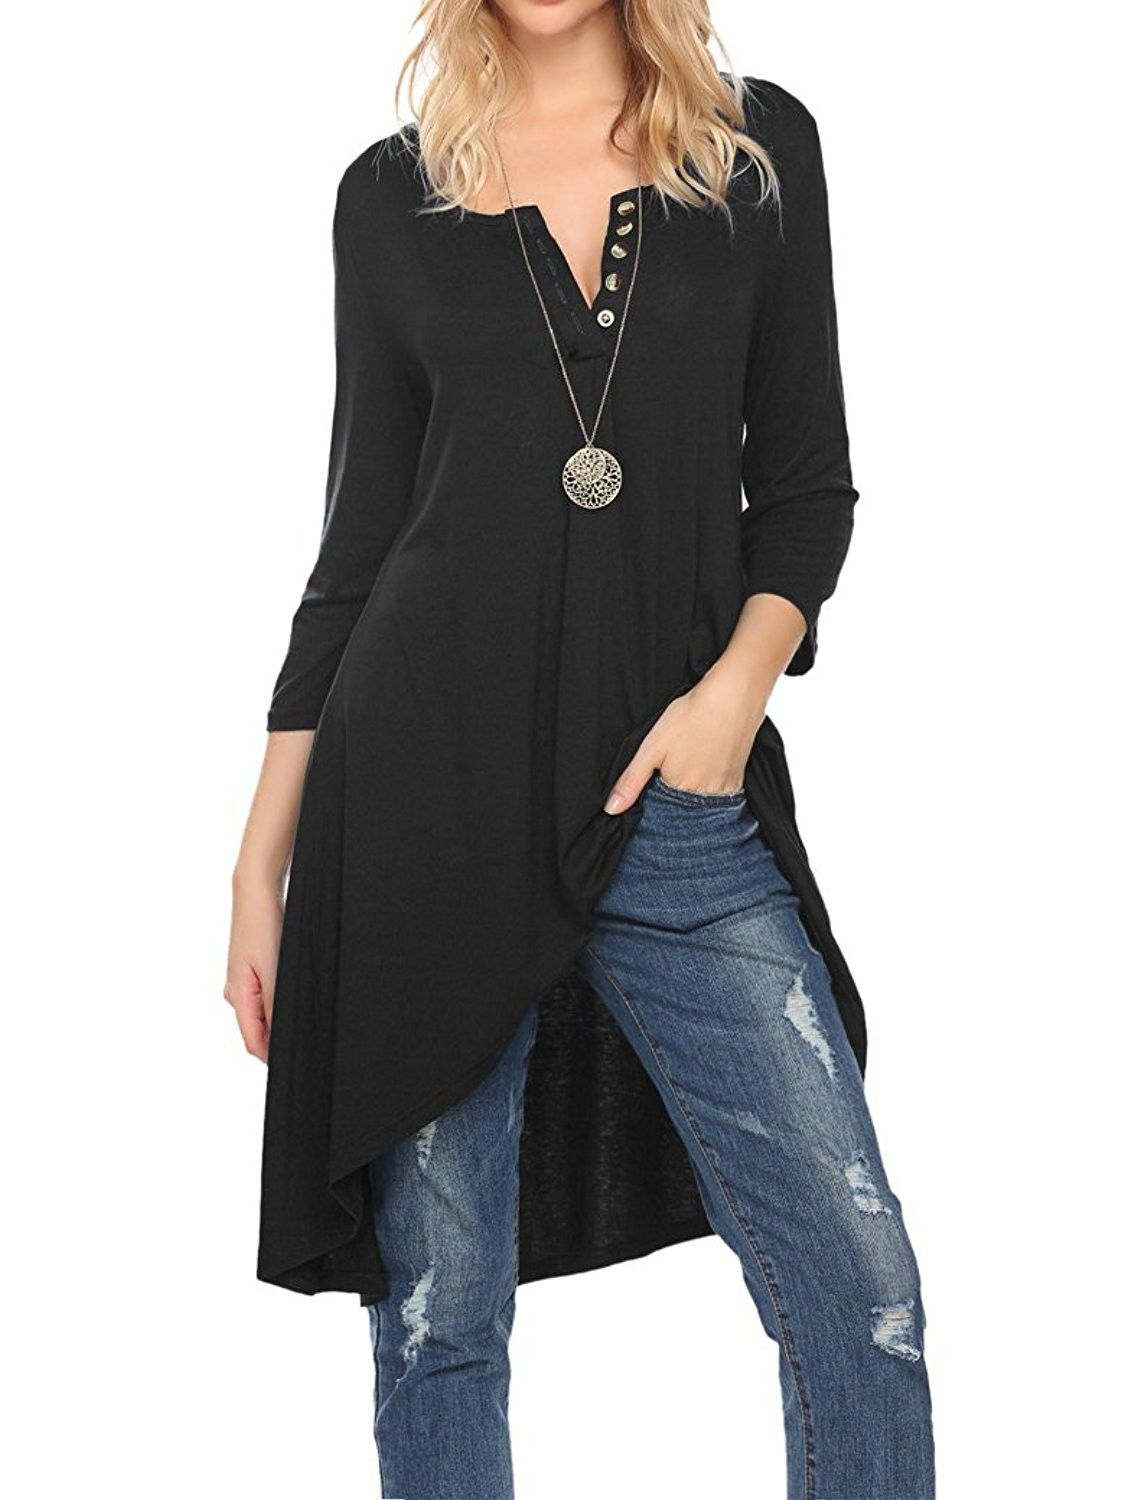 6a7c3d7fb8 Nagoo Women s Half Sleeve High Low Loose Fit Casual Tunic Tops Tee Shirt  Dress - Black - CB12N2T99AA